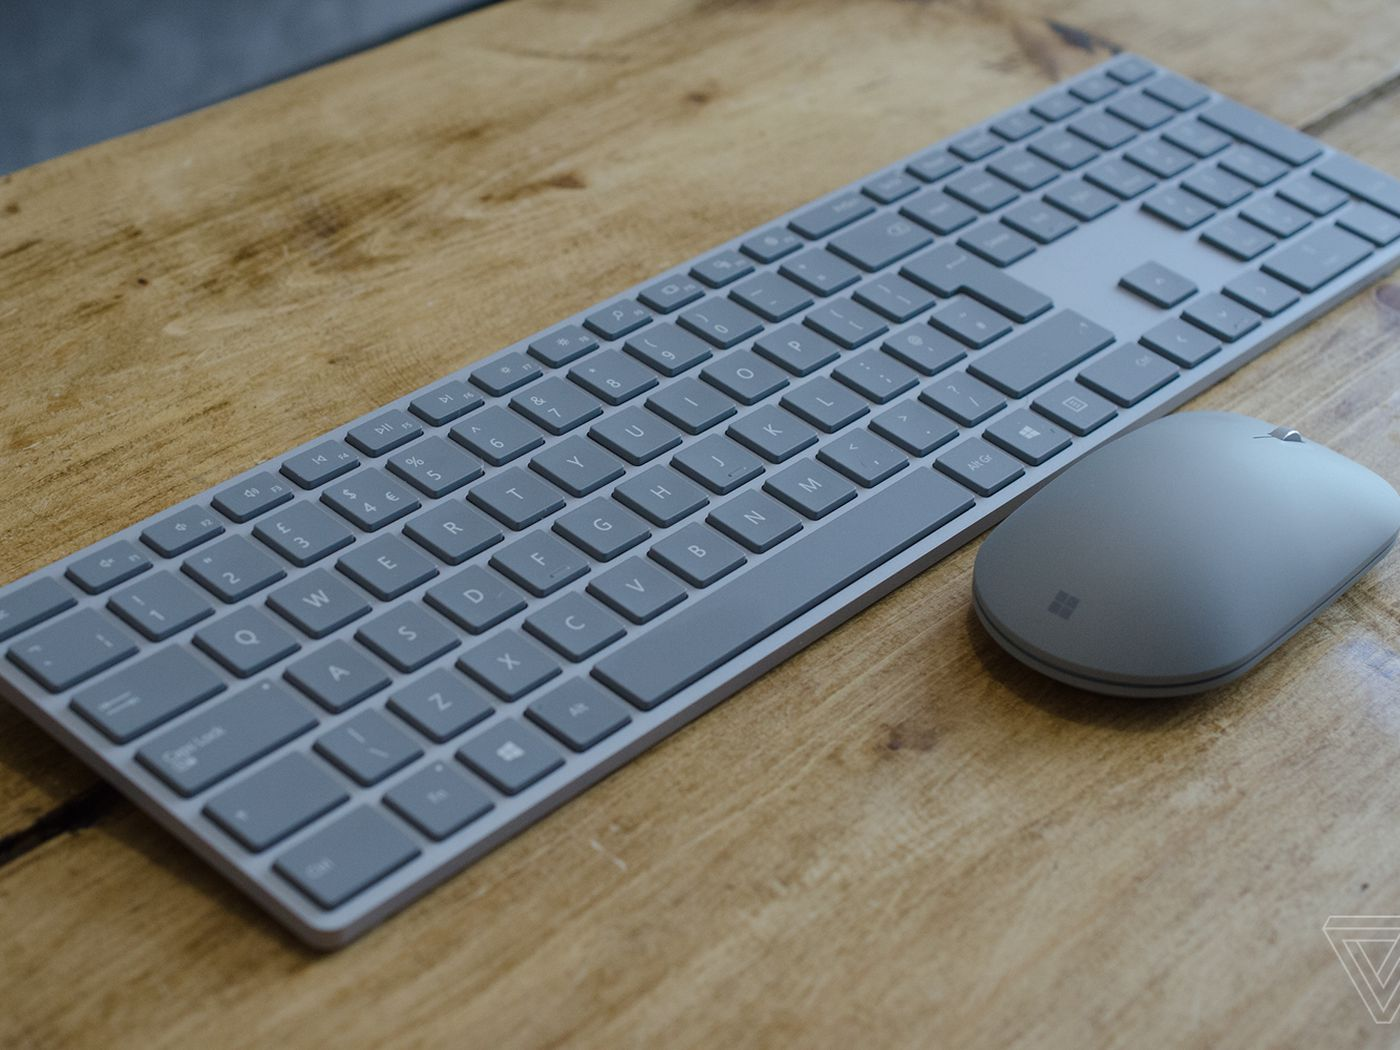 Microsoft Finally Made My Favorite Keyboard And Mouse The Verge